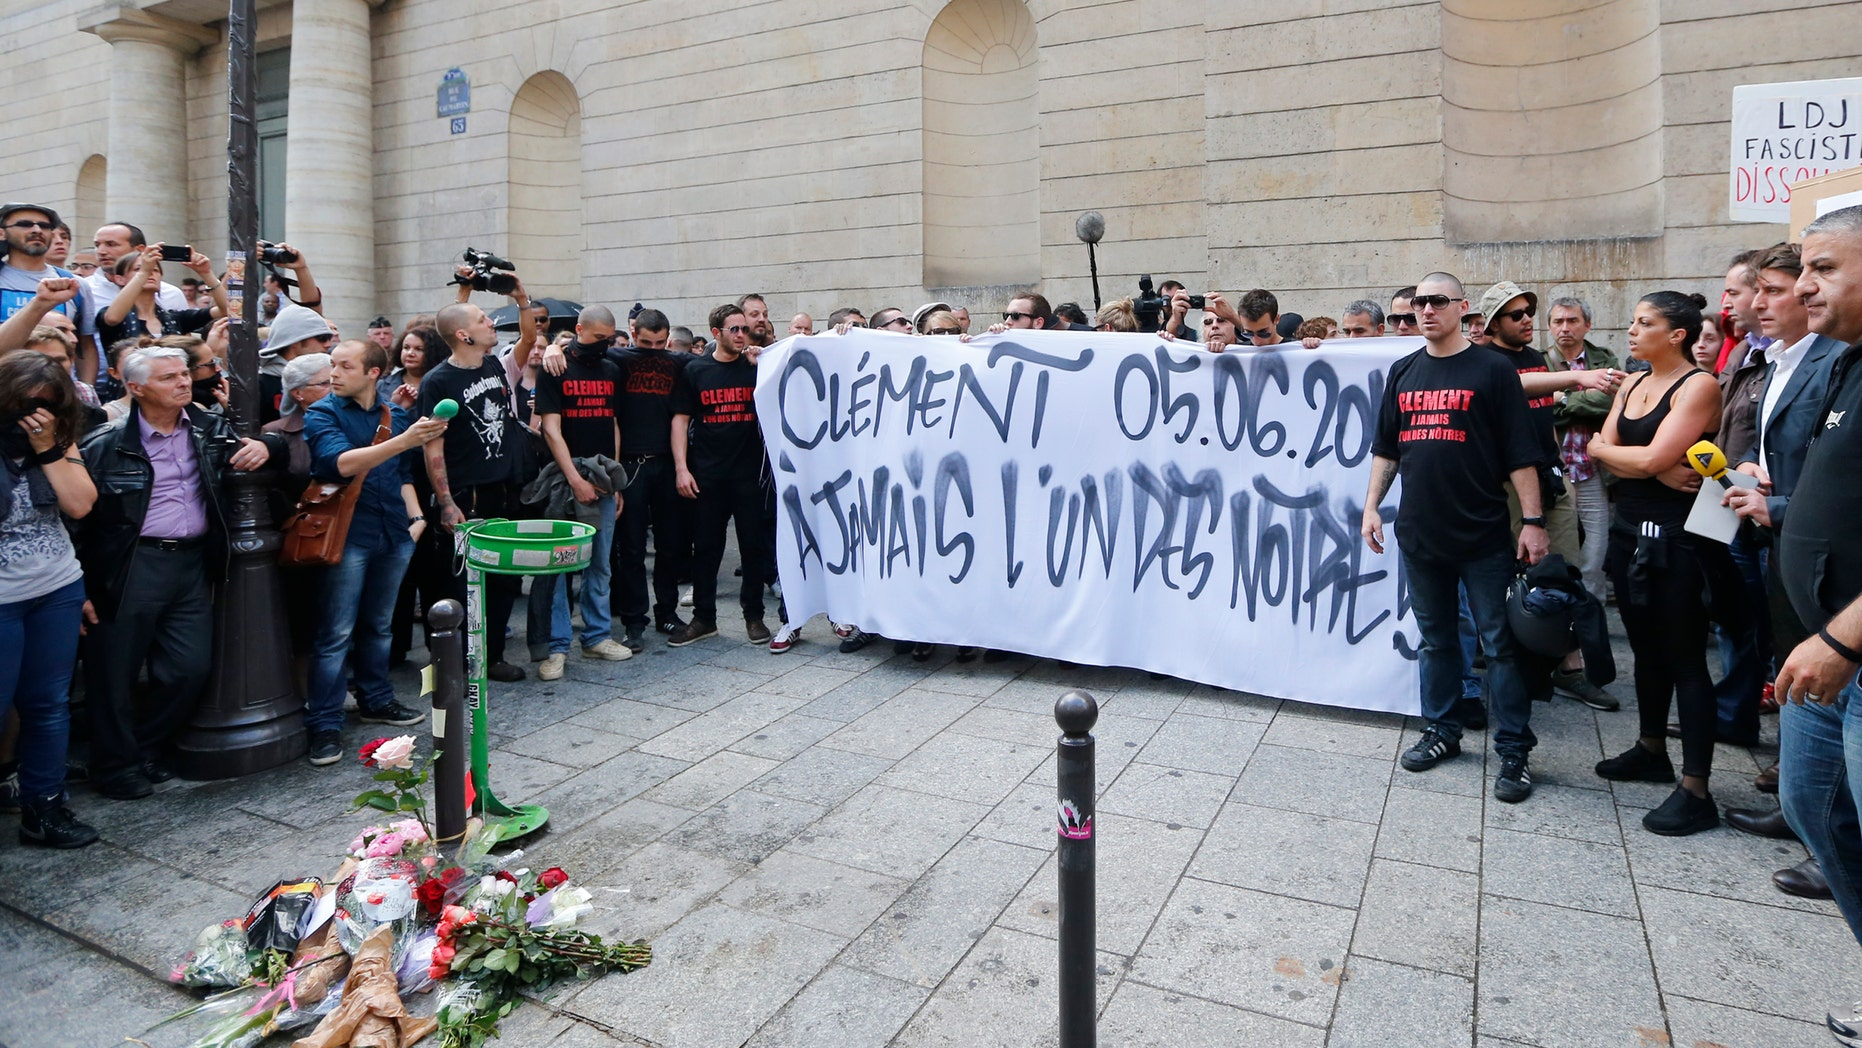 June 6, 2013: French far-left activists gather around flowers which lay  at the foot of a concrete post where Clement Meric, 19, was attacked. A group of skinheads attacked a French far-left activist in the heart of Paris' shopping district, leaving the young man brain-dead in the hospital Thursday, officials said, in an attack that raised fears of increased far-right violence.